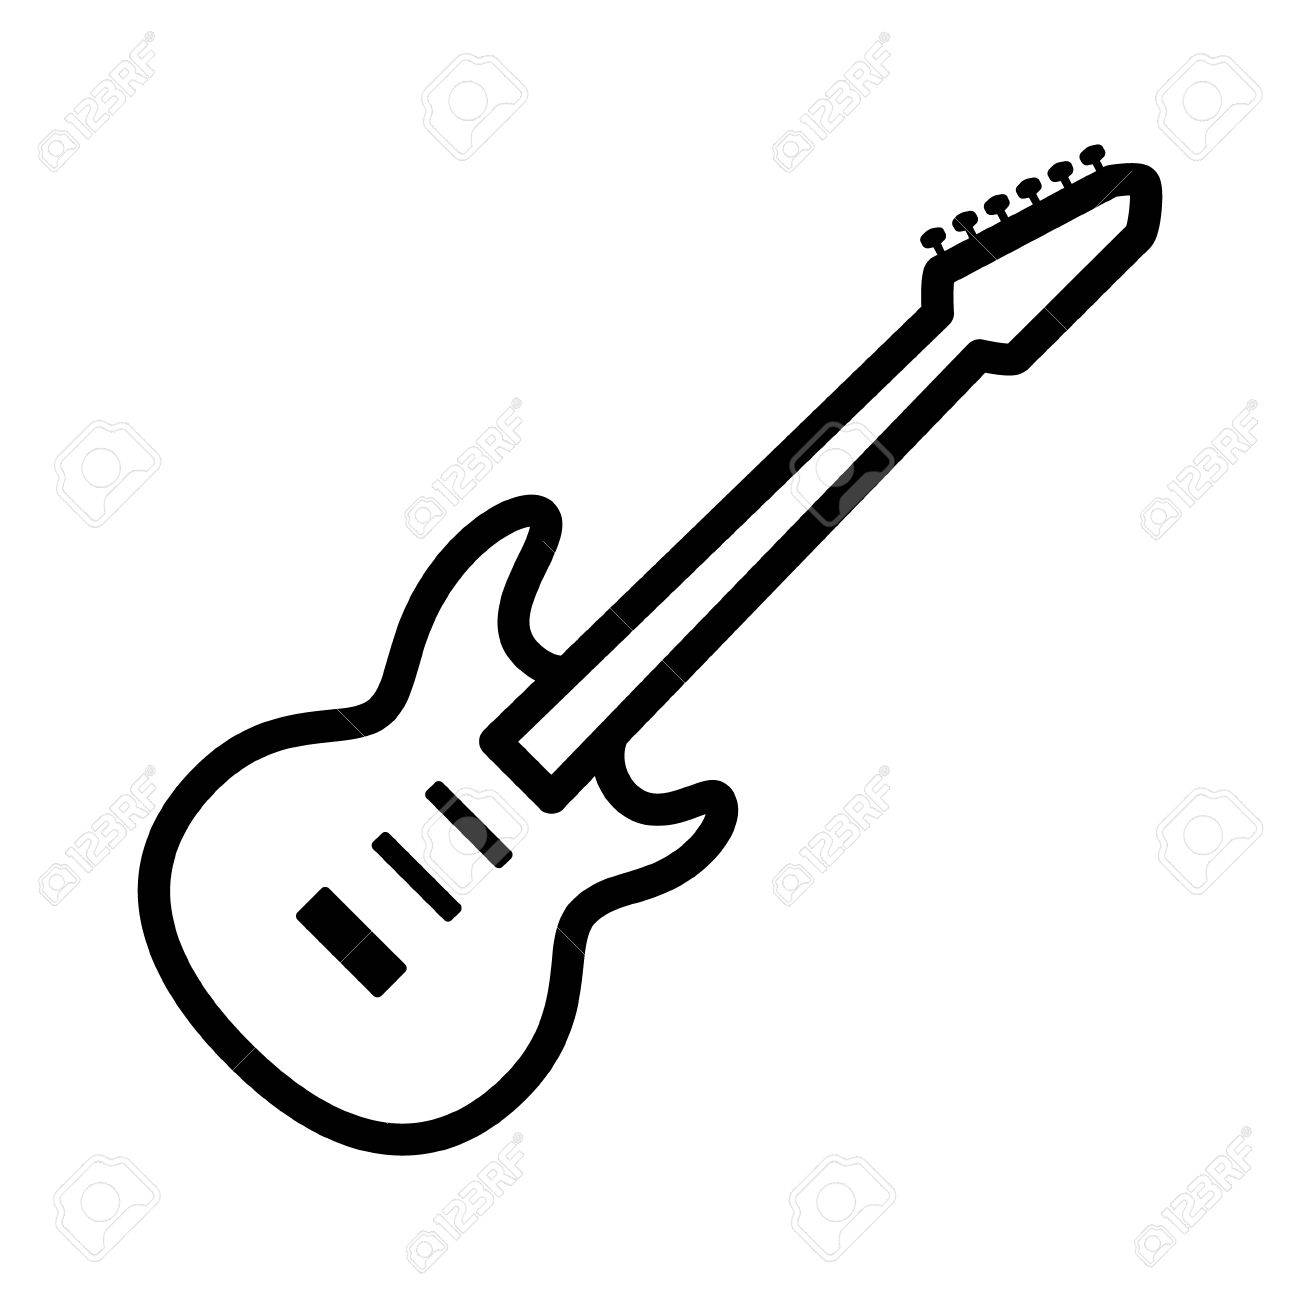 electric guitar musical instrument line art vector icon for music rh 123rf com guitar vector free guitar vector free corel draw